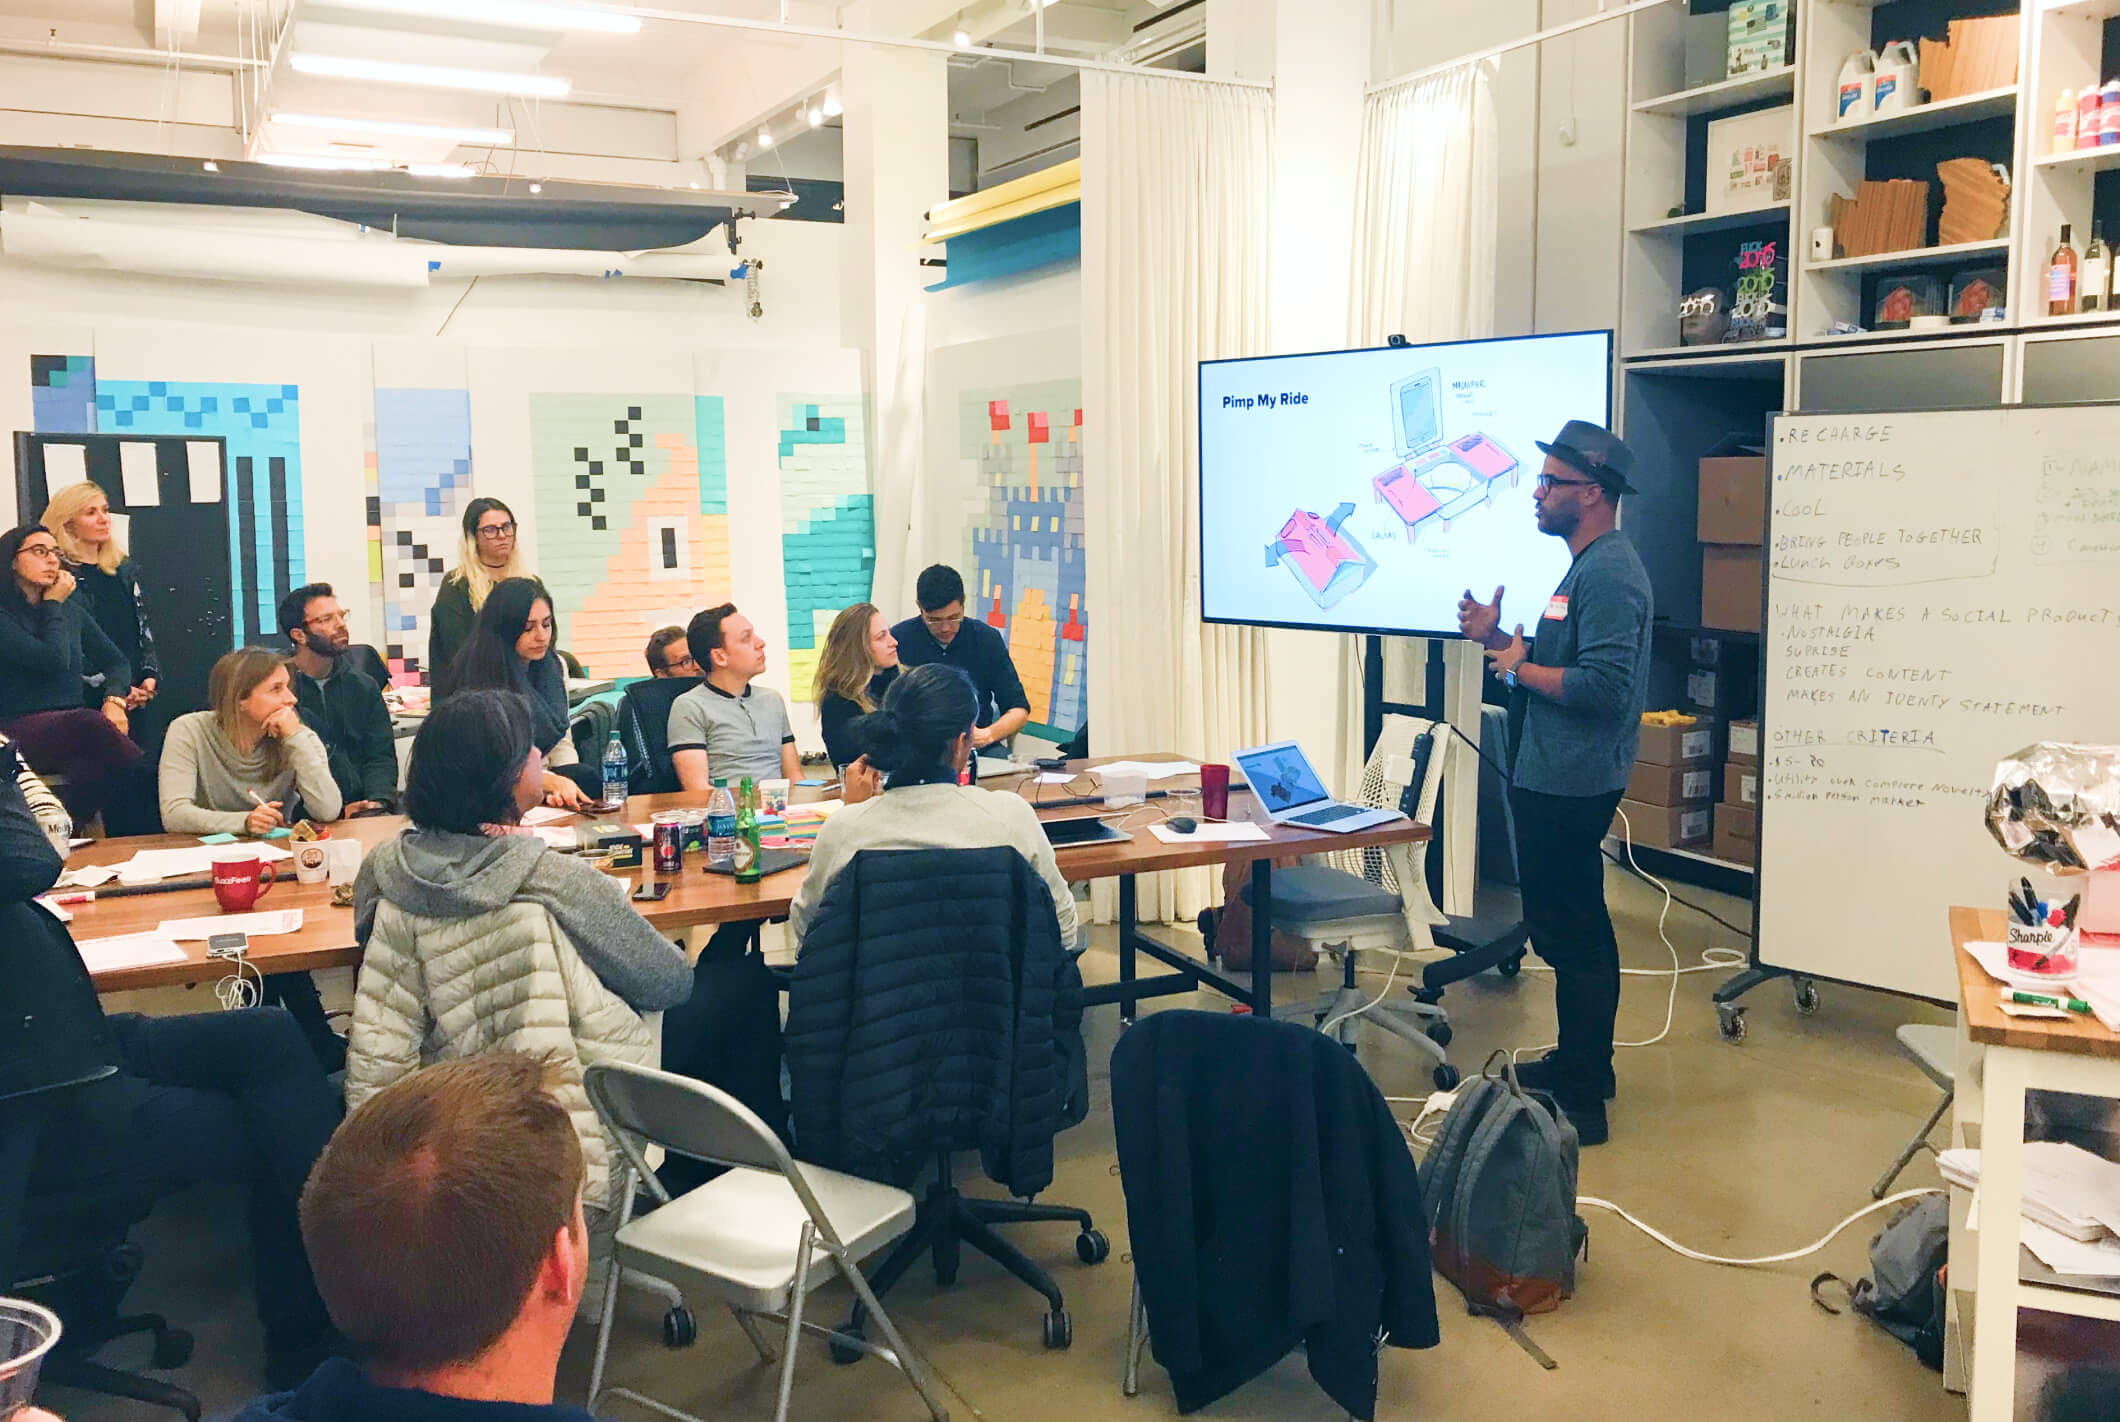 A facilitated innovation sprint workshop for BuzzFeed